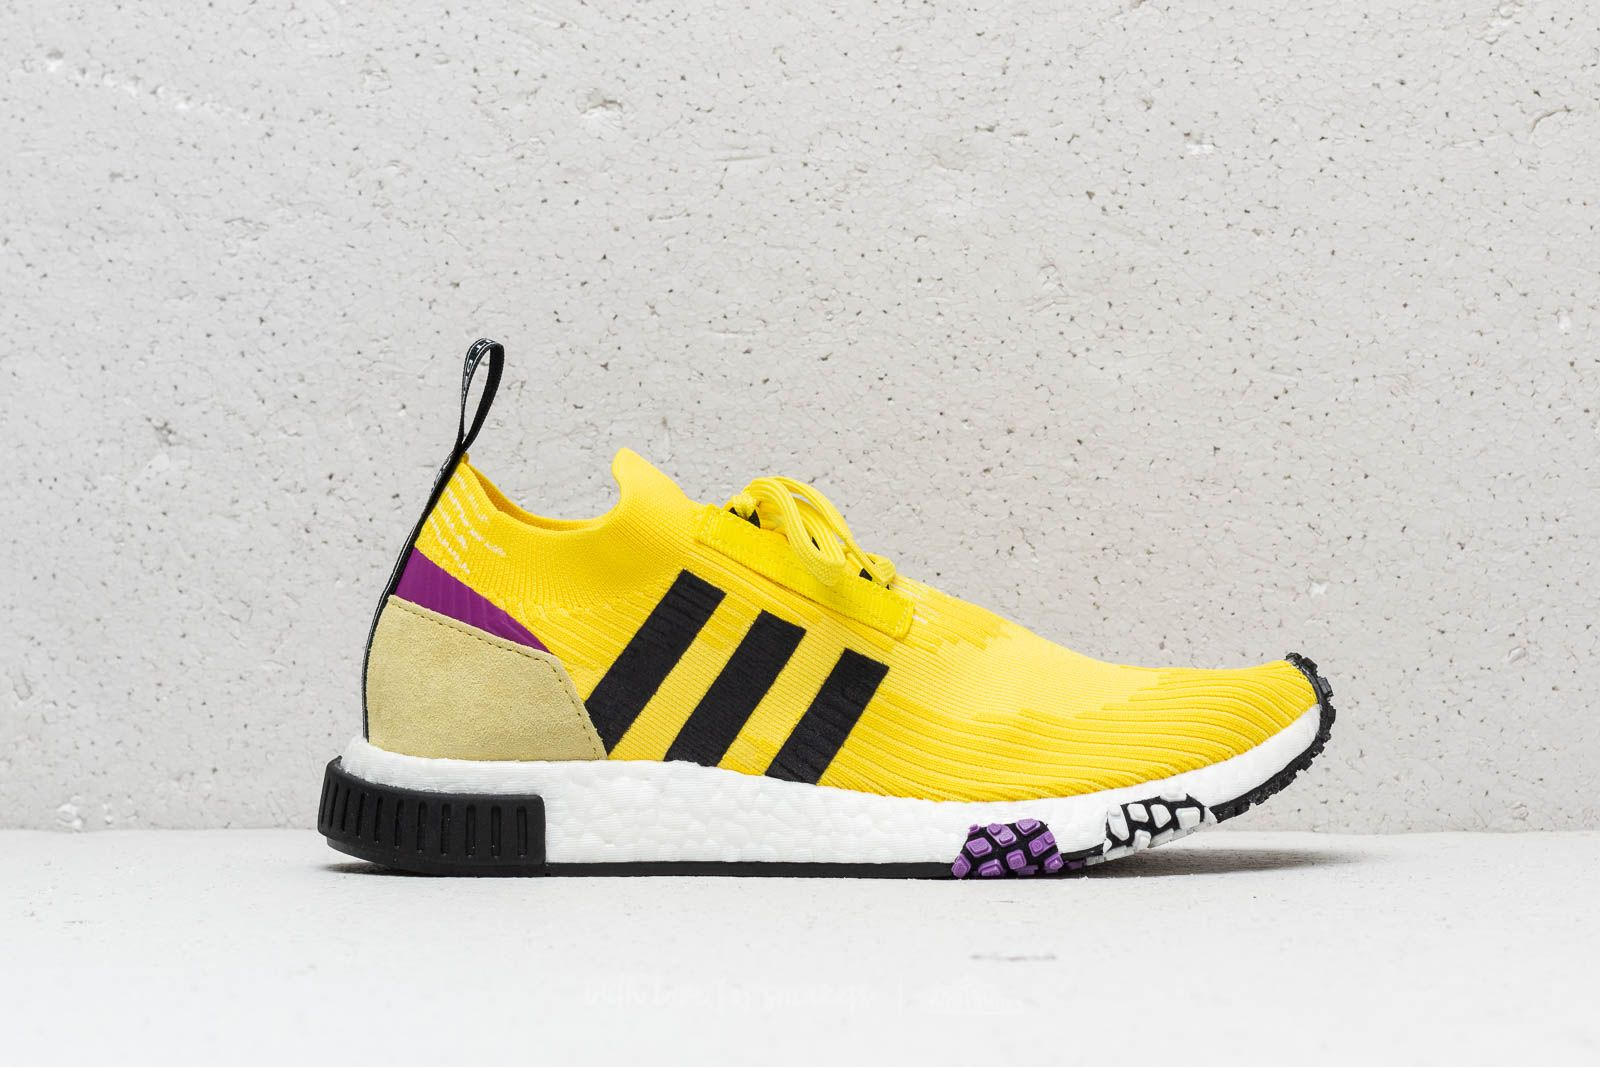 74255b7f3ab0a adidas NMD Racer Primeknit Solar Yellow  Core Black  Shock Purple at a  great price